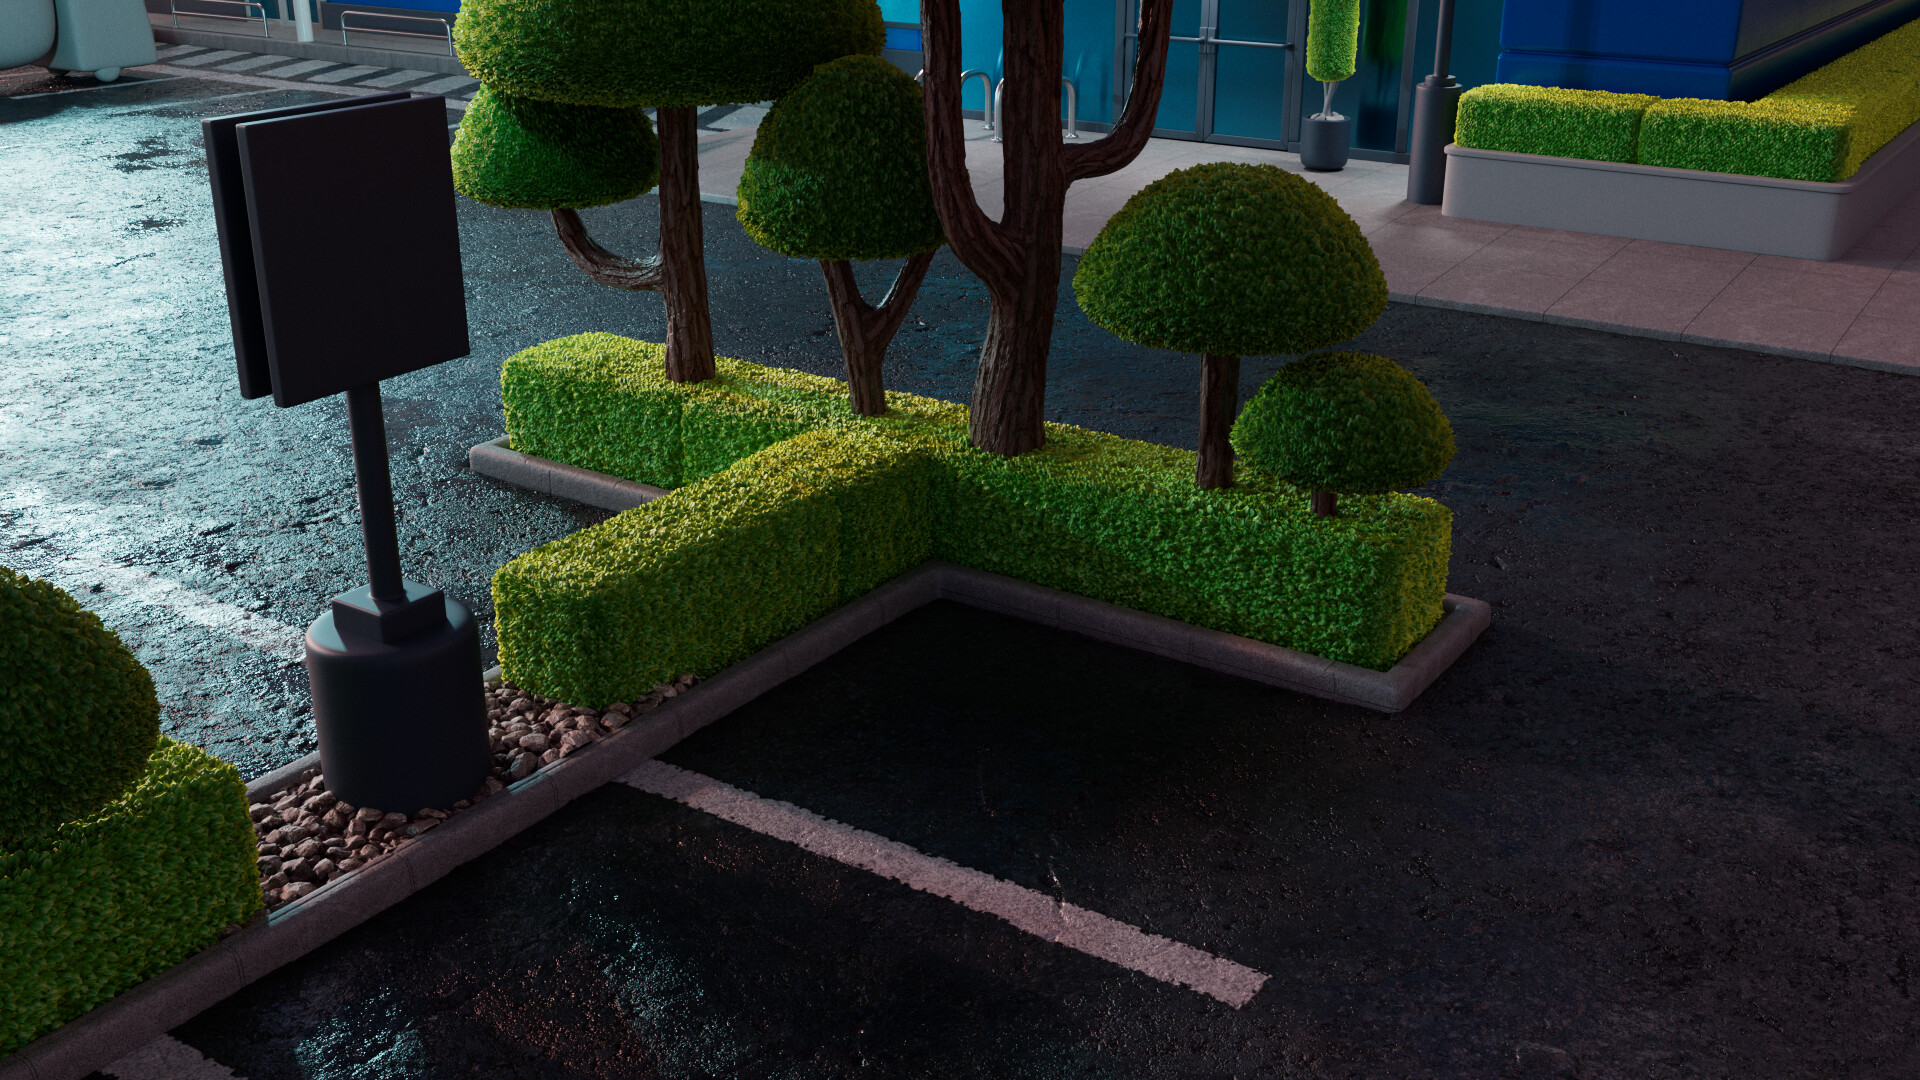 A Close Up on the parking lot assets, to check the vegetation and asphalt substance shaders.